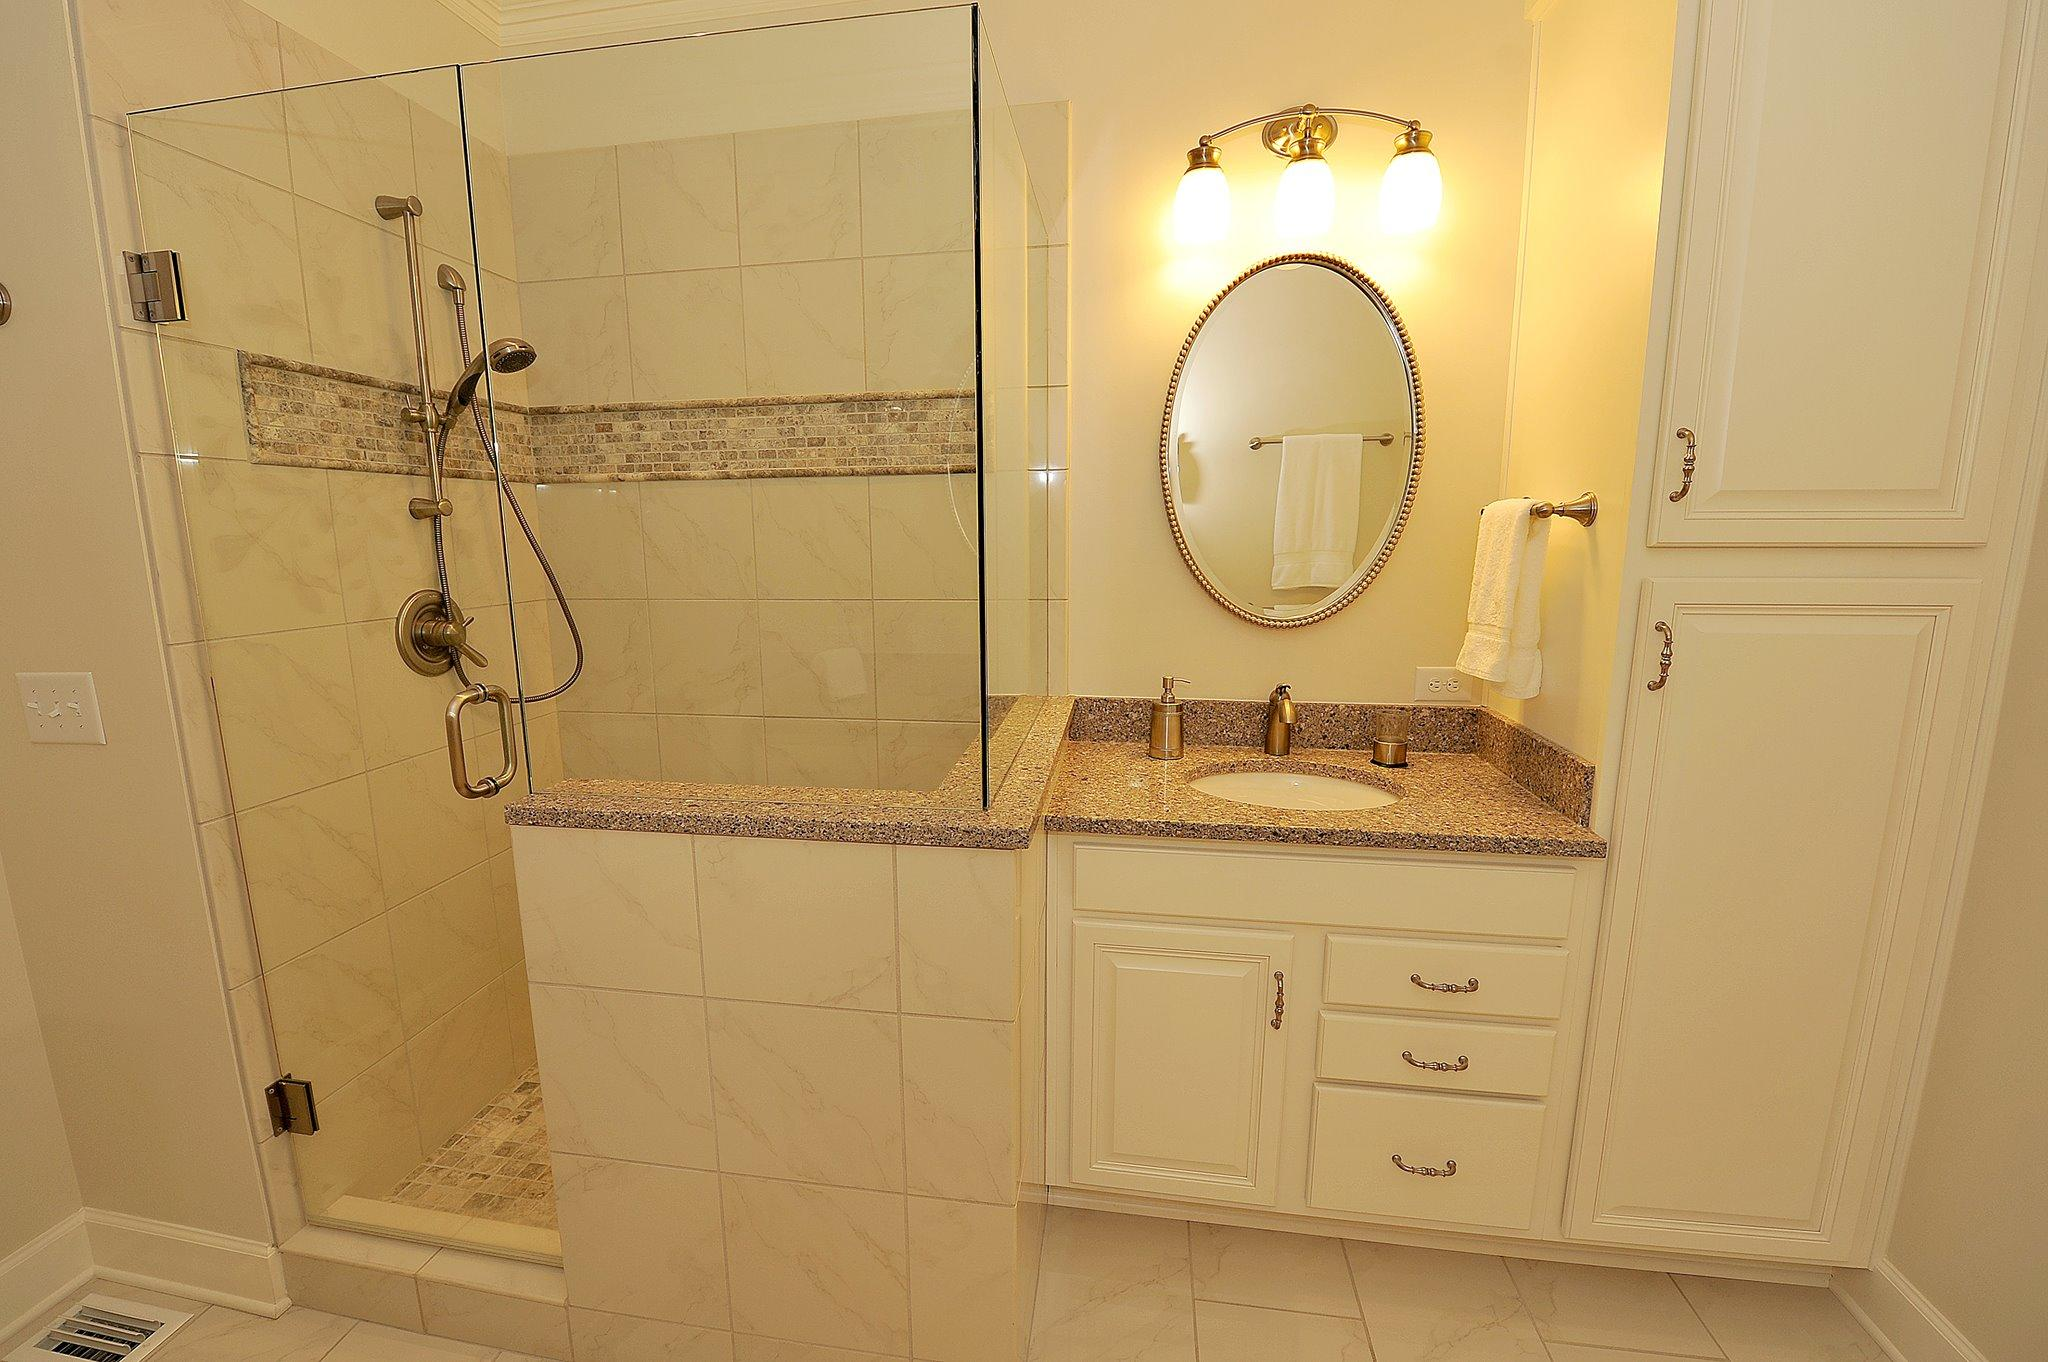 bathroom remodel al a how to do decoration birmingham long homey gallery remodeling it keyid amusing does take justbeingmyself renovation ideas design stunning